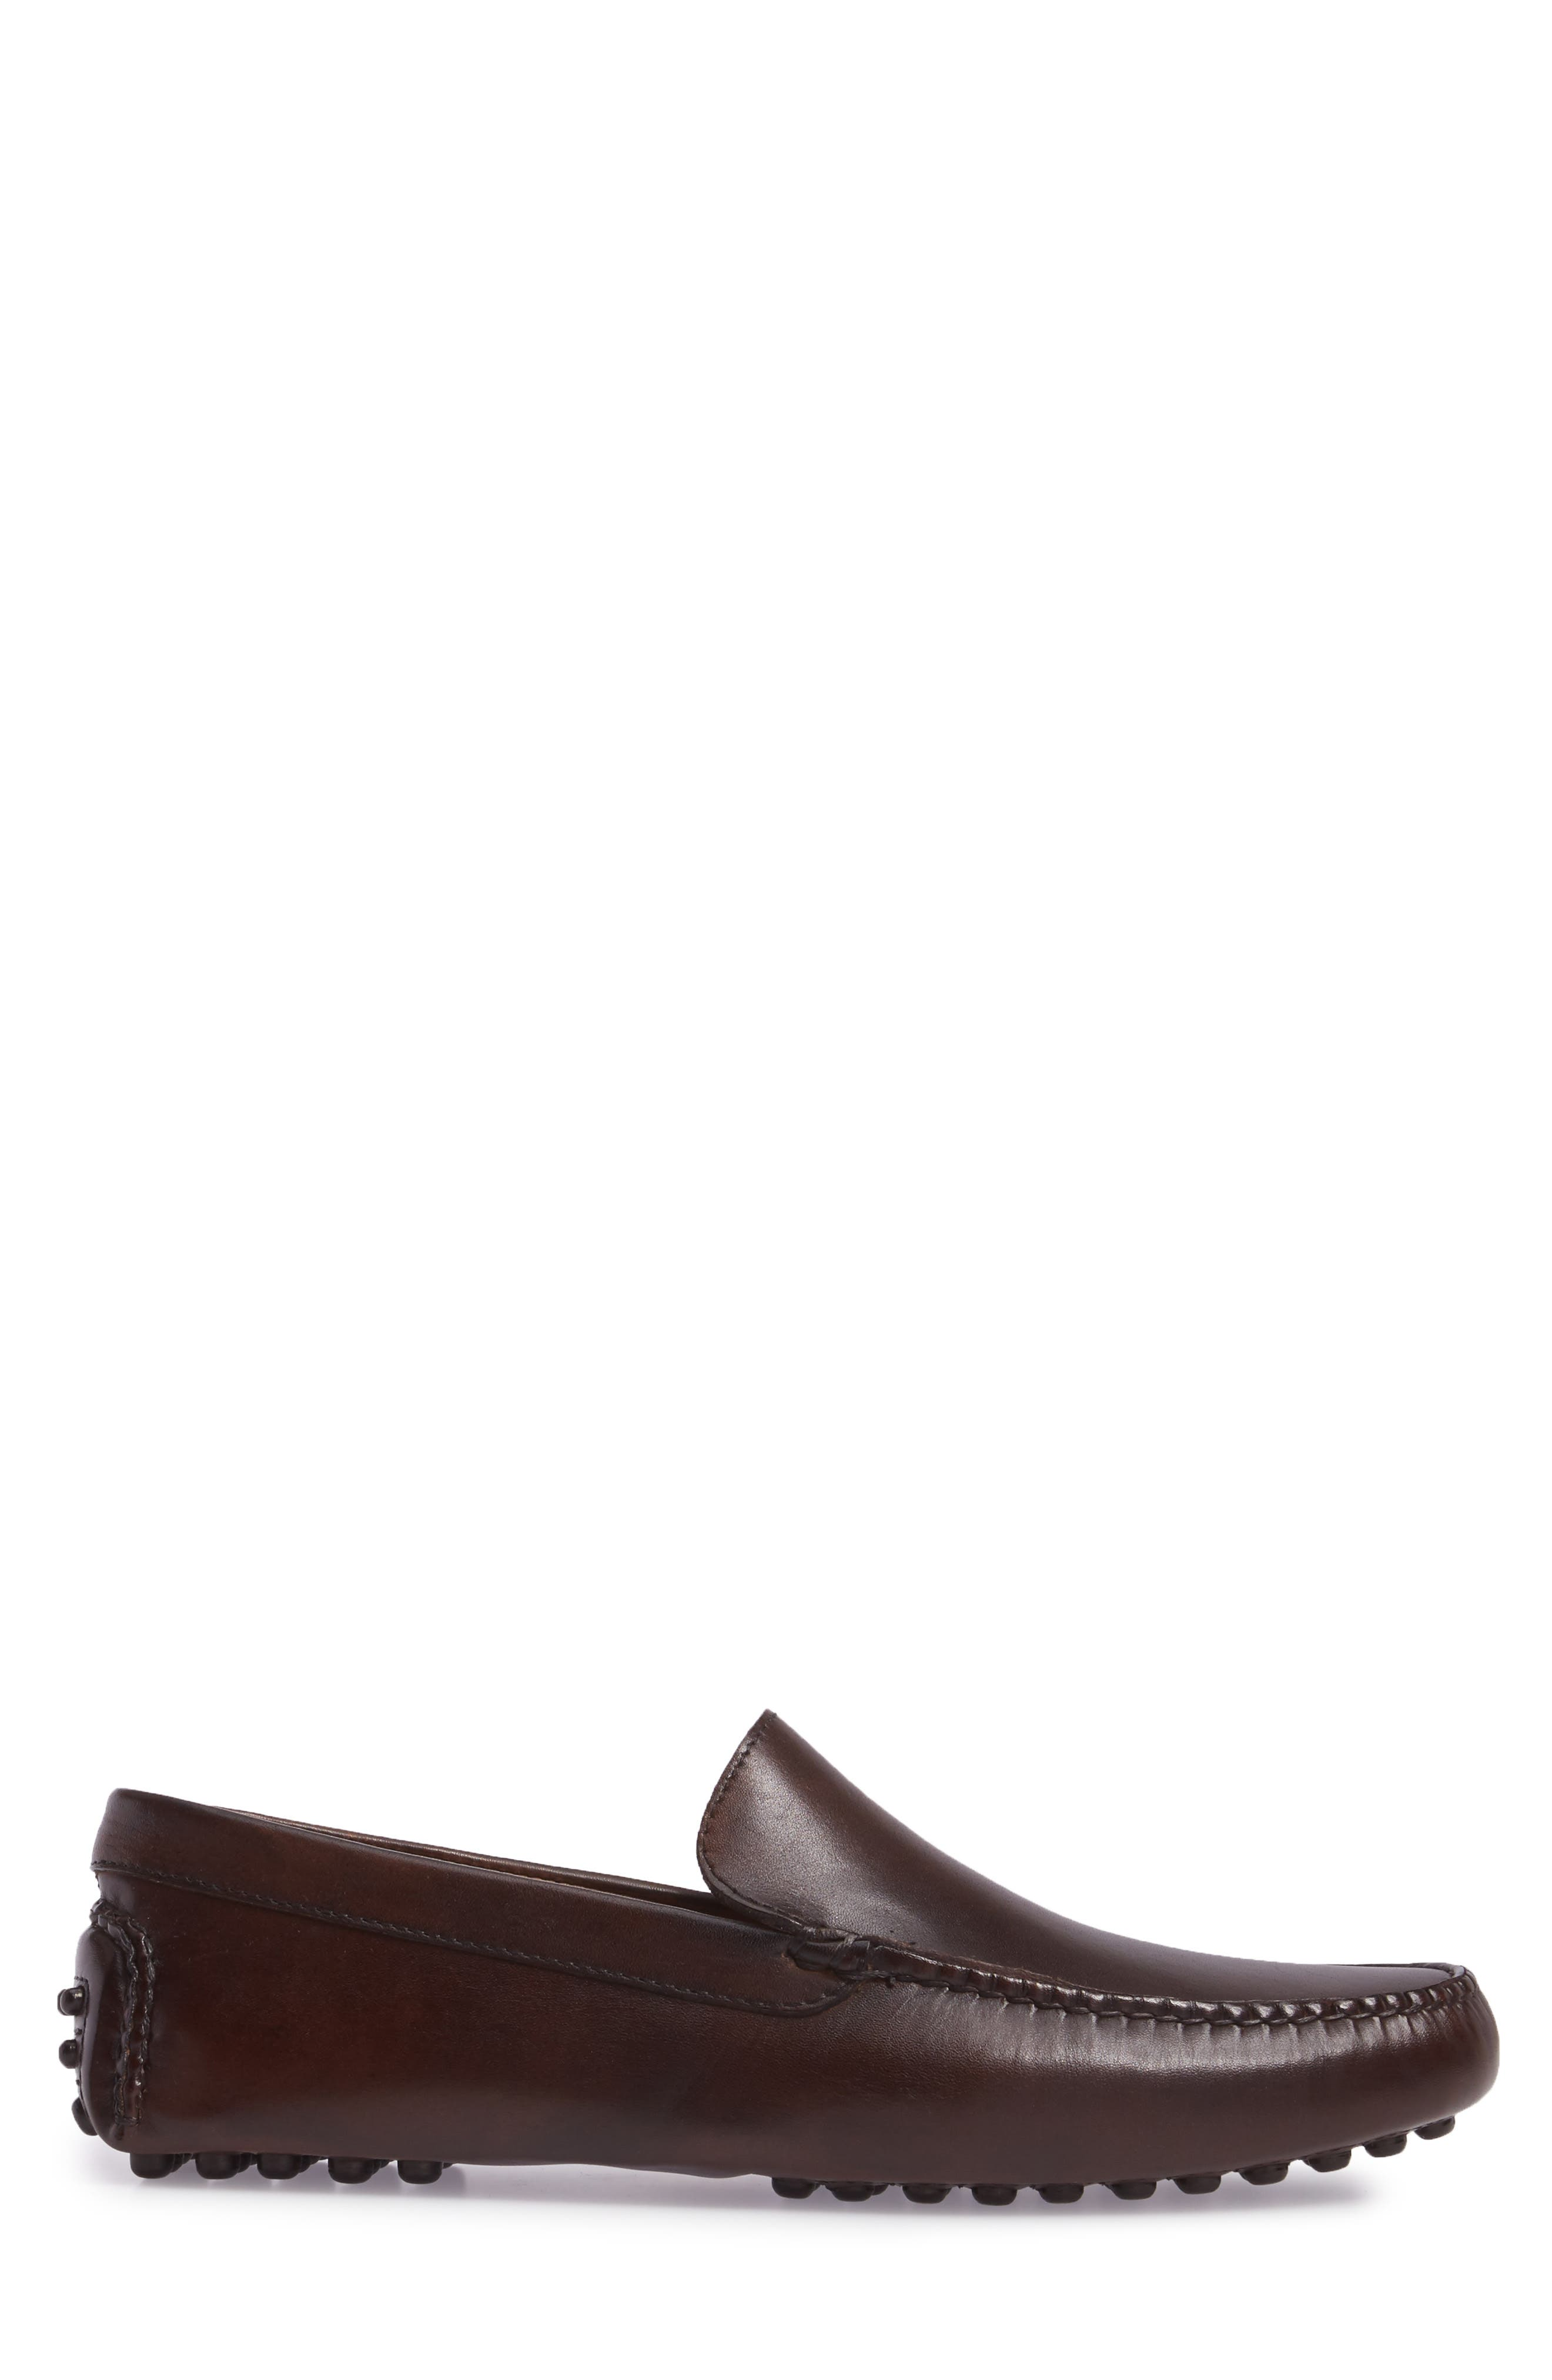 Cane Driving Shoe,                             Alternate thumbnail 3, color,                             Brown Leather